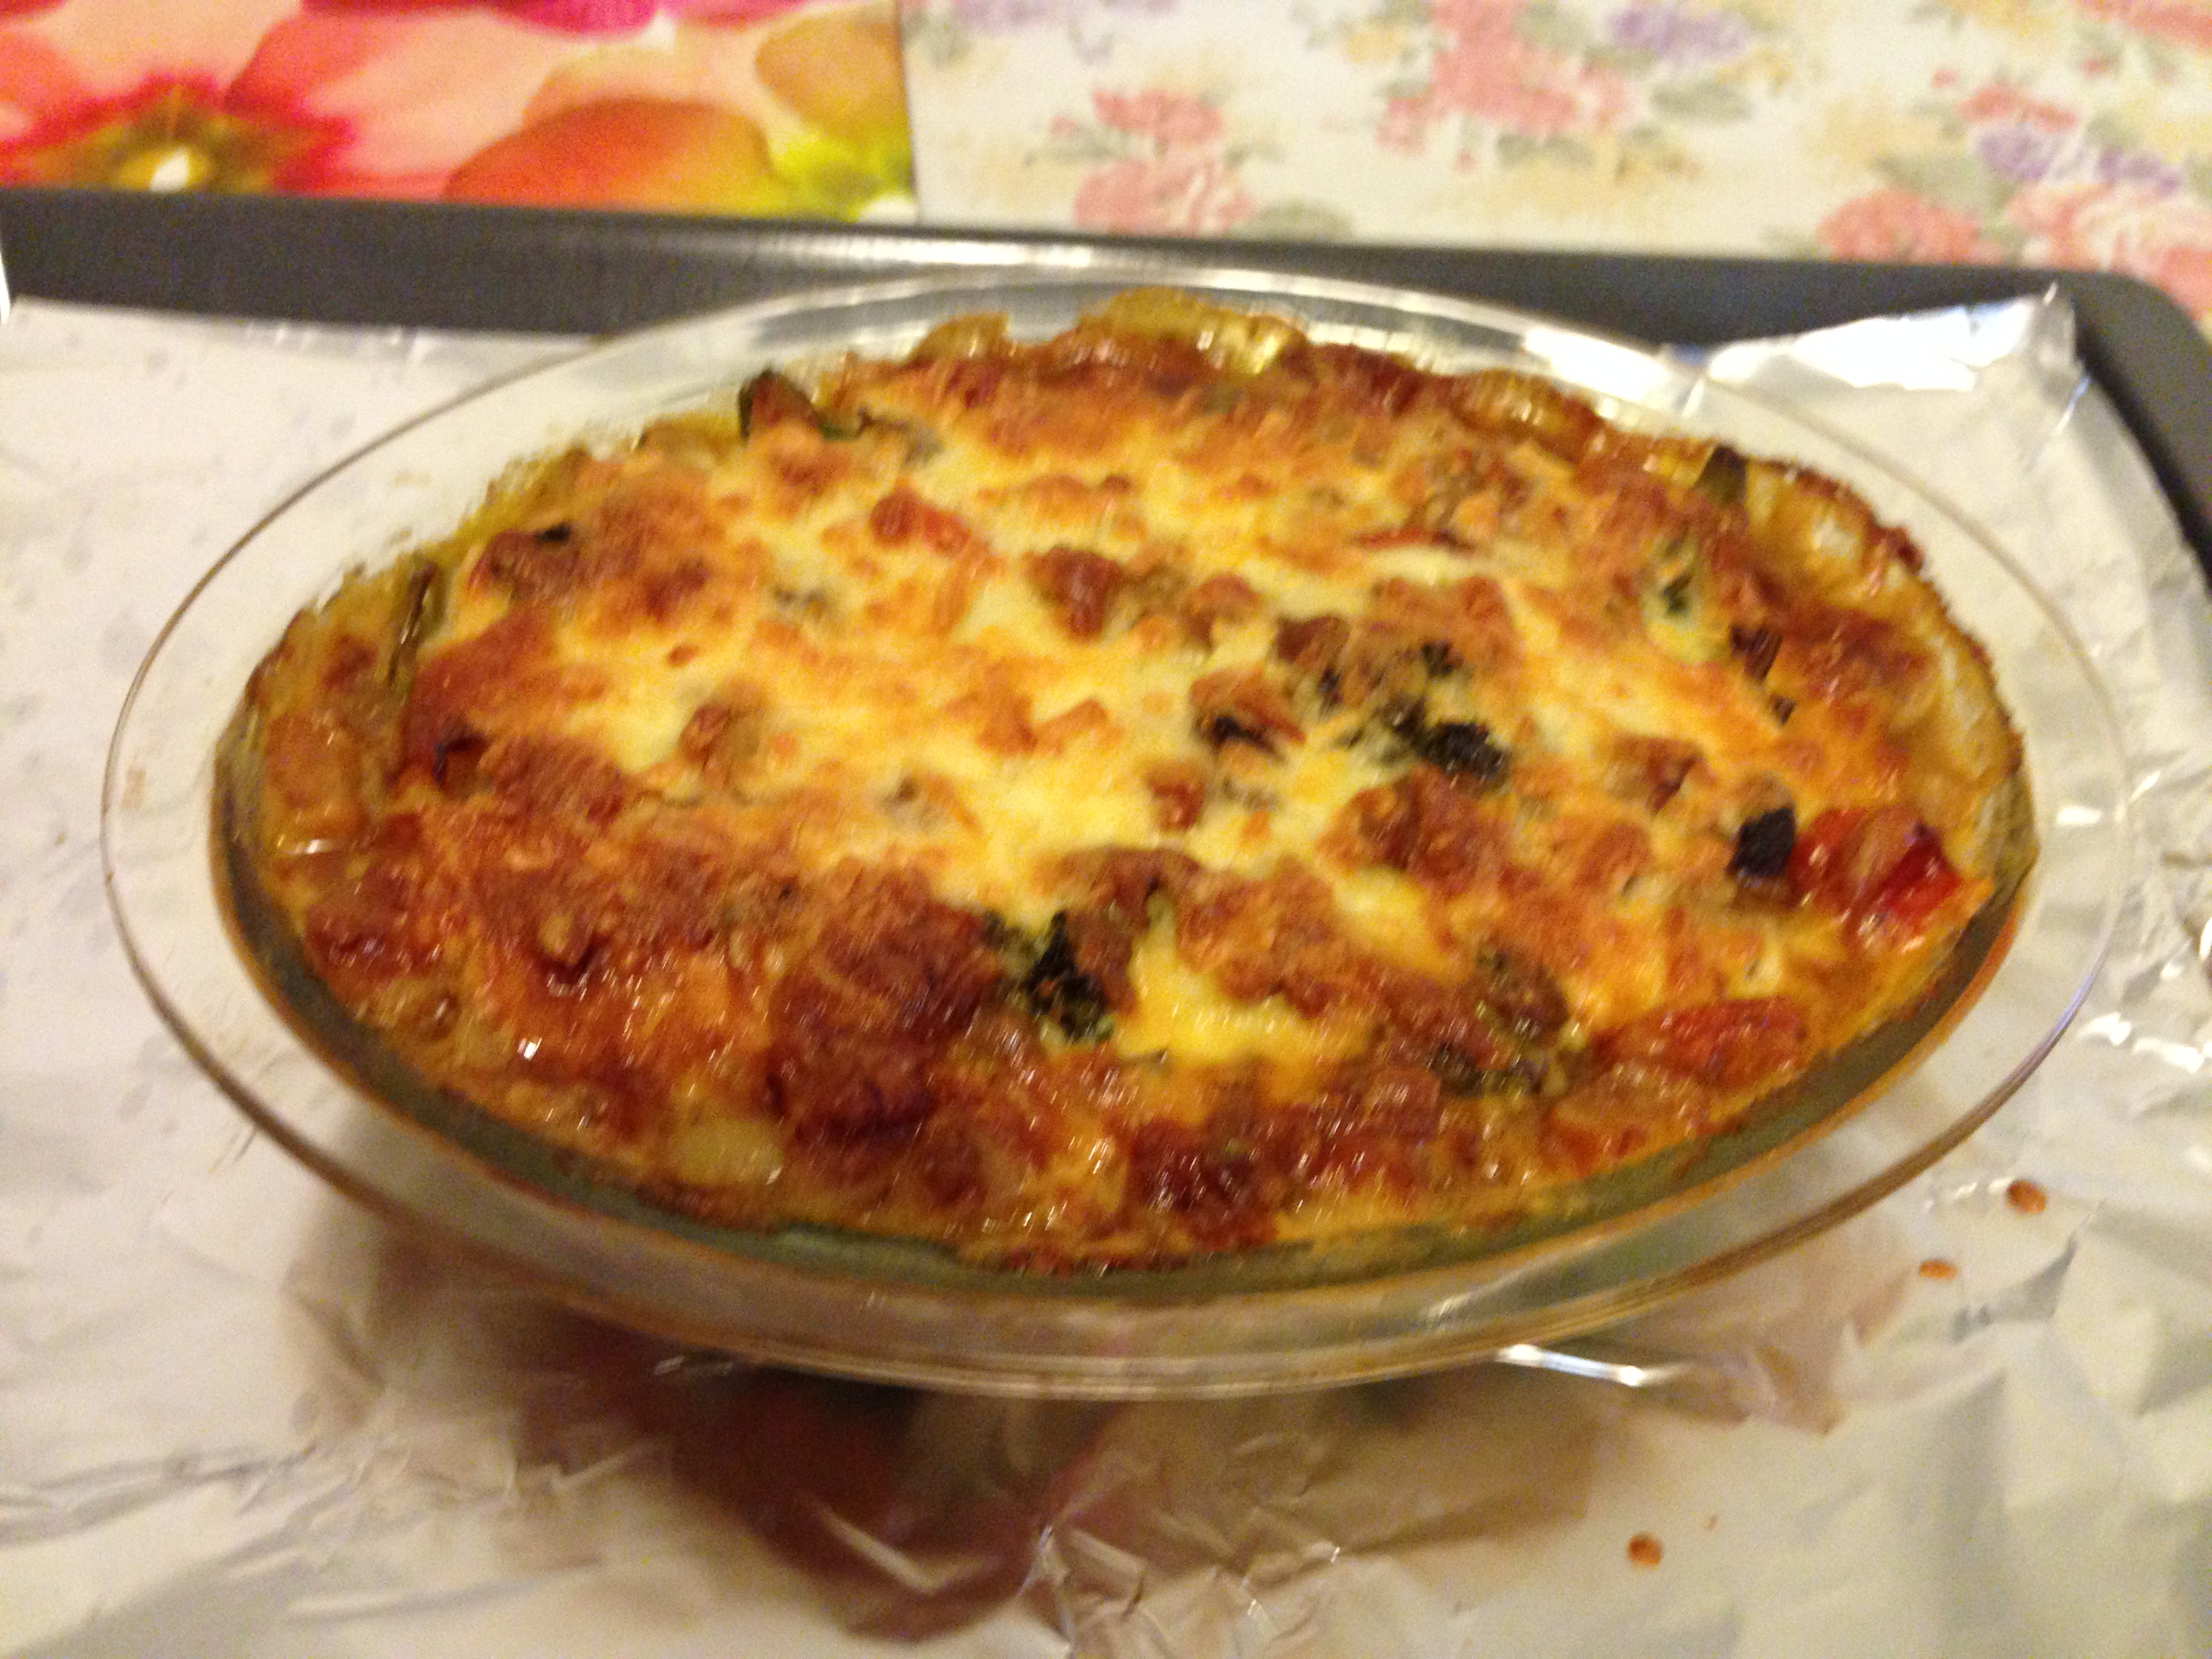 beef-and-vegs-stew-and-macaroni-baked